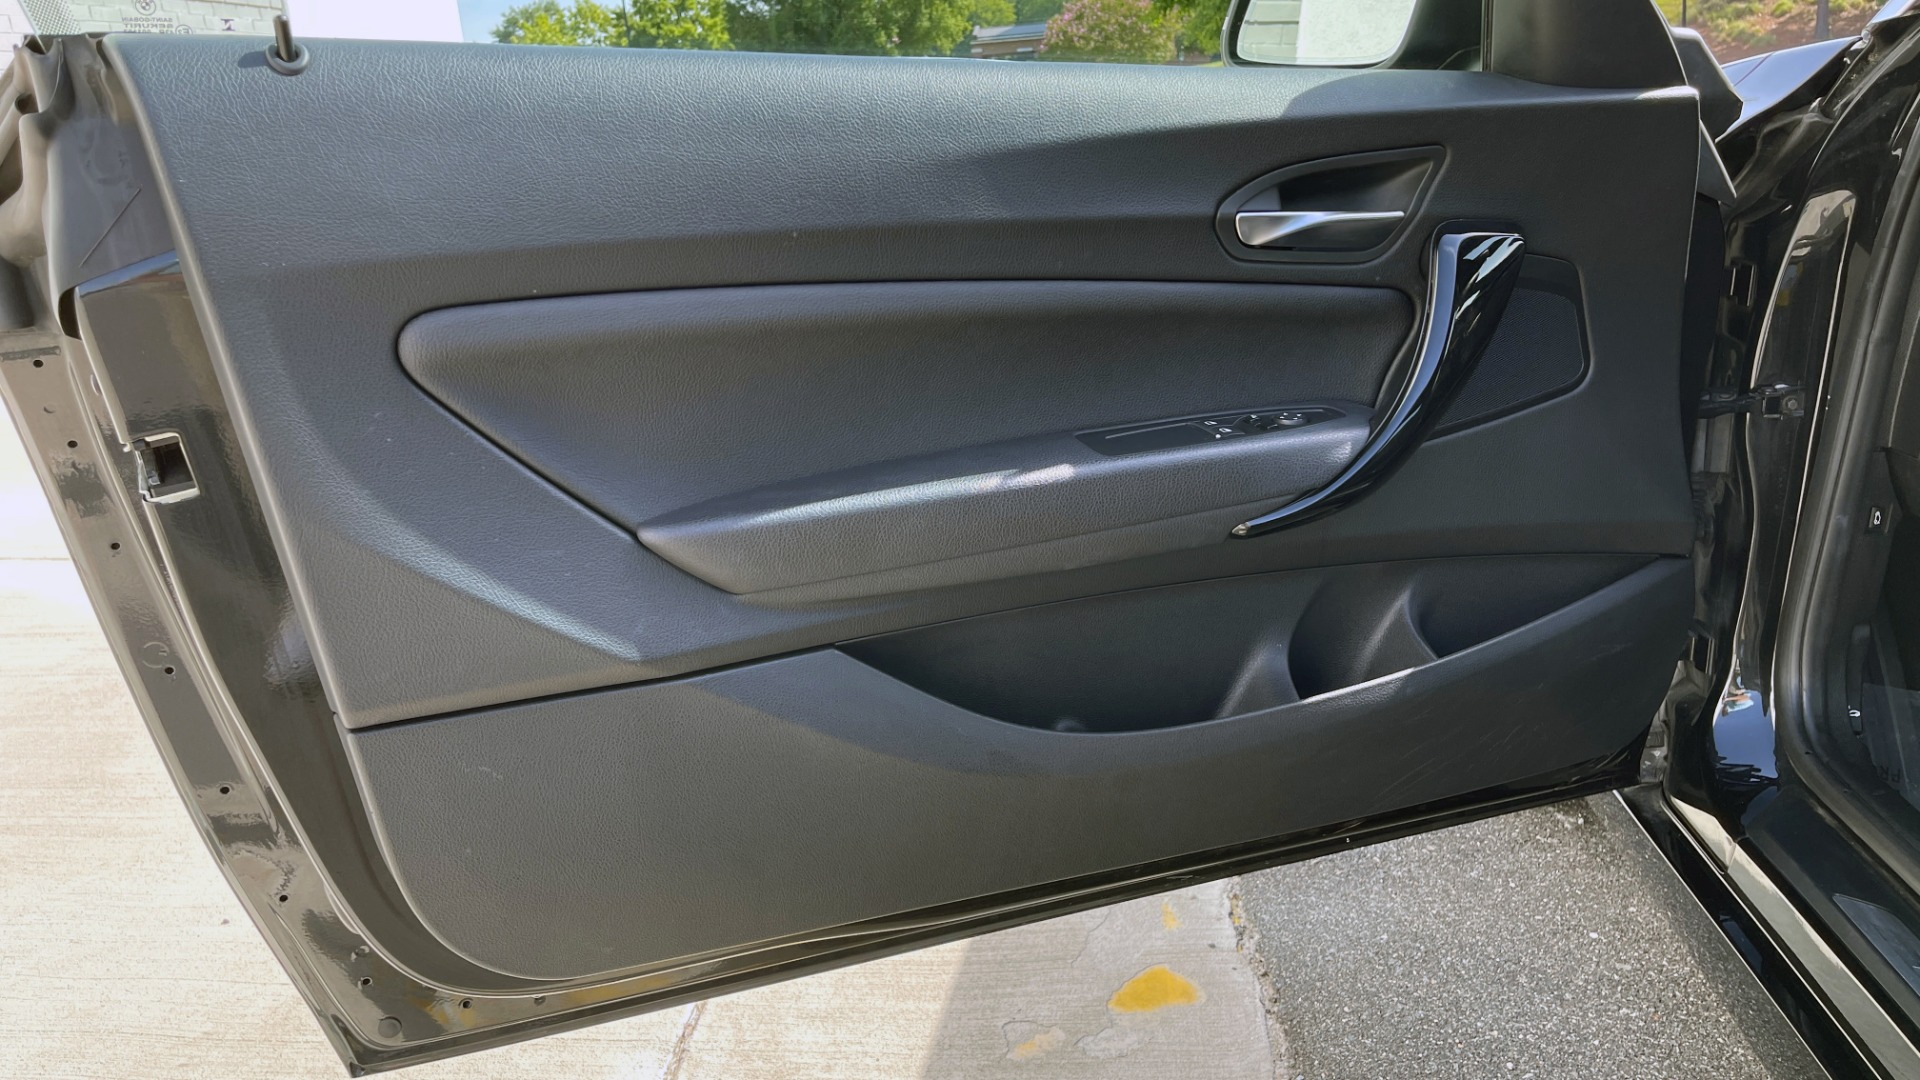 Used 2018 BMW 2 SERIES 230I XDRIVE PREMIUM / CONV PKG / NAV / SUNROOF / REARVIEW for sale $30,795 at Formula Imports in Charlotte NC 28227 22